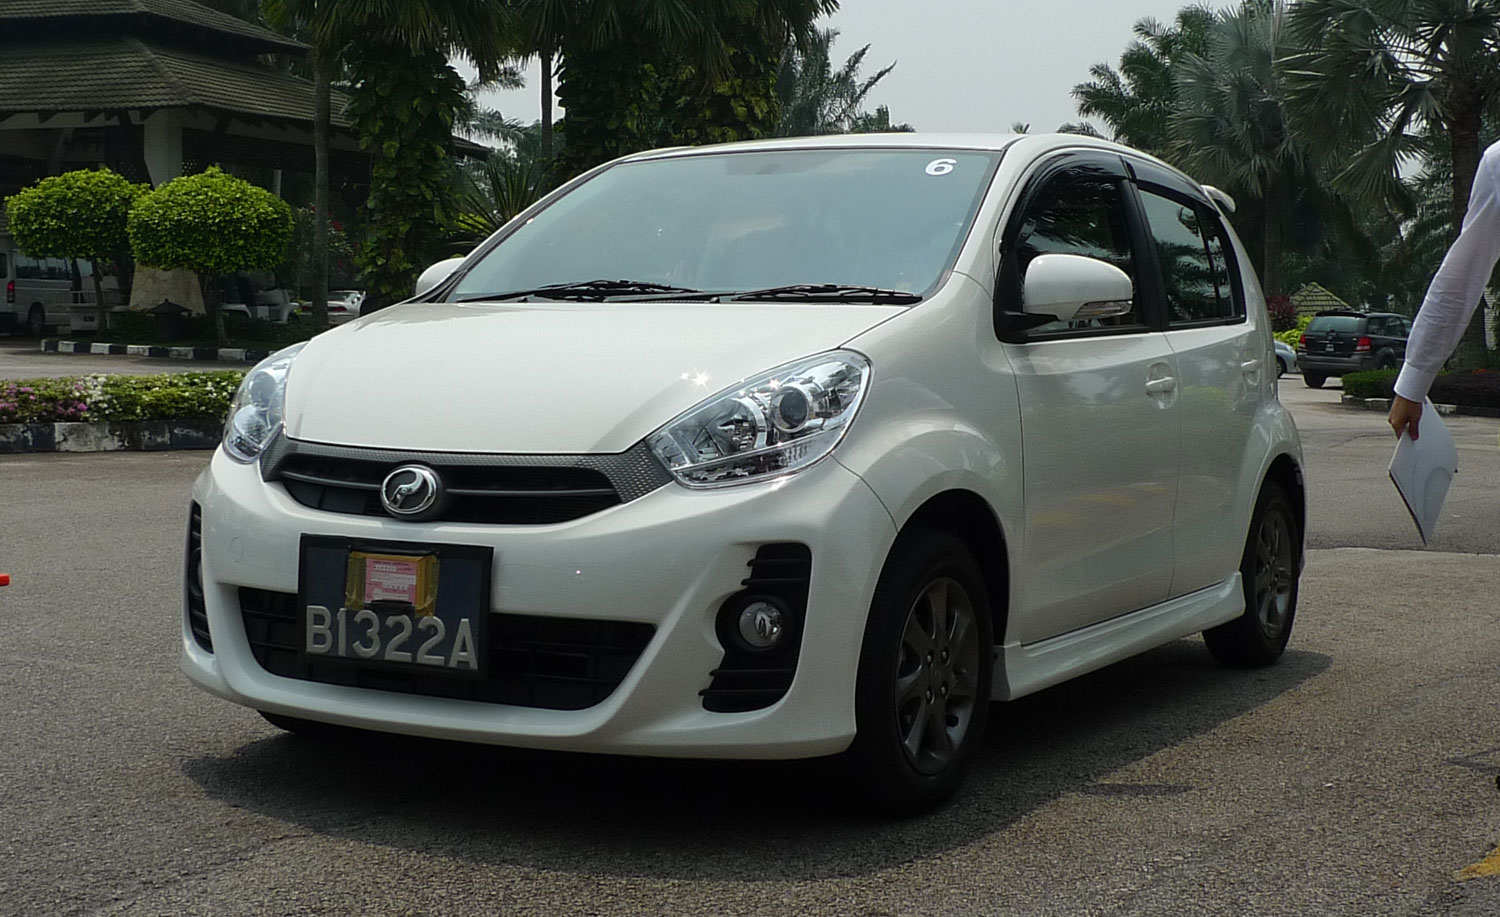 Myvi Se 1.5 >> Perodua Myvi SE 1.5 and Extreme Launch and Test Drive Review Paul Tan - Image 68839